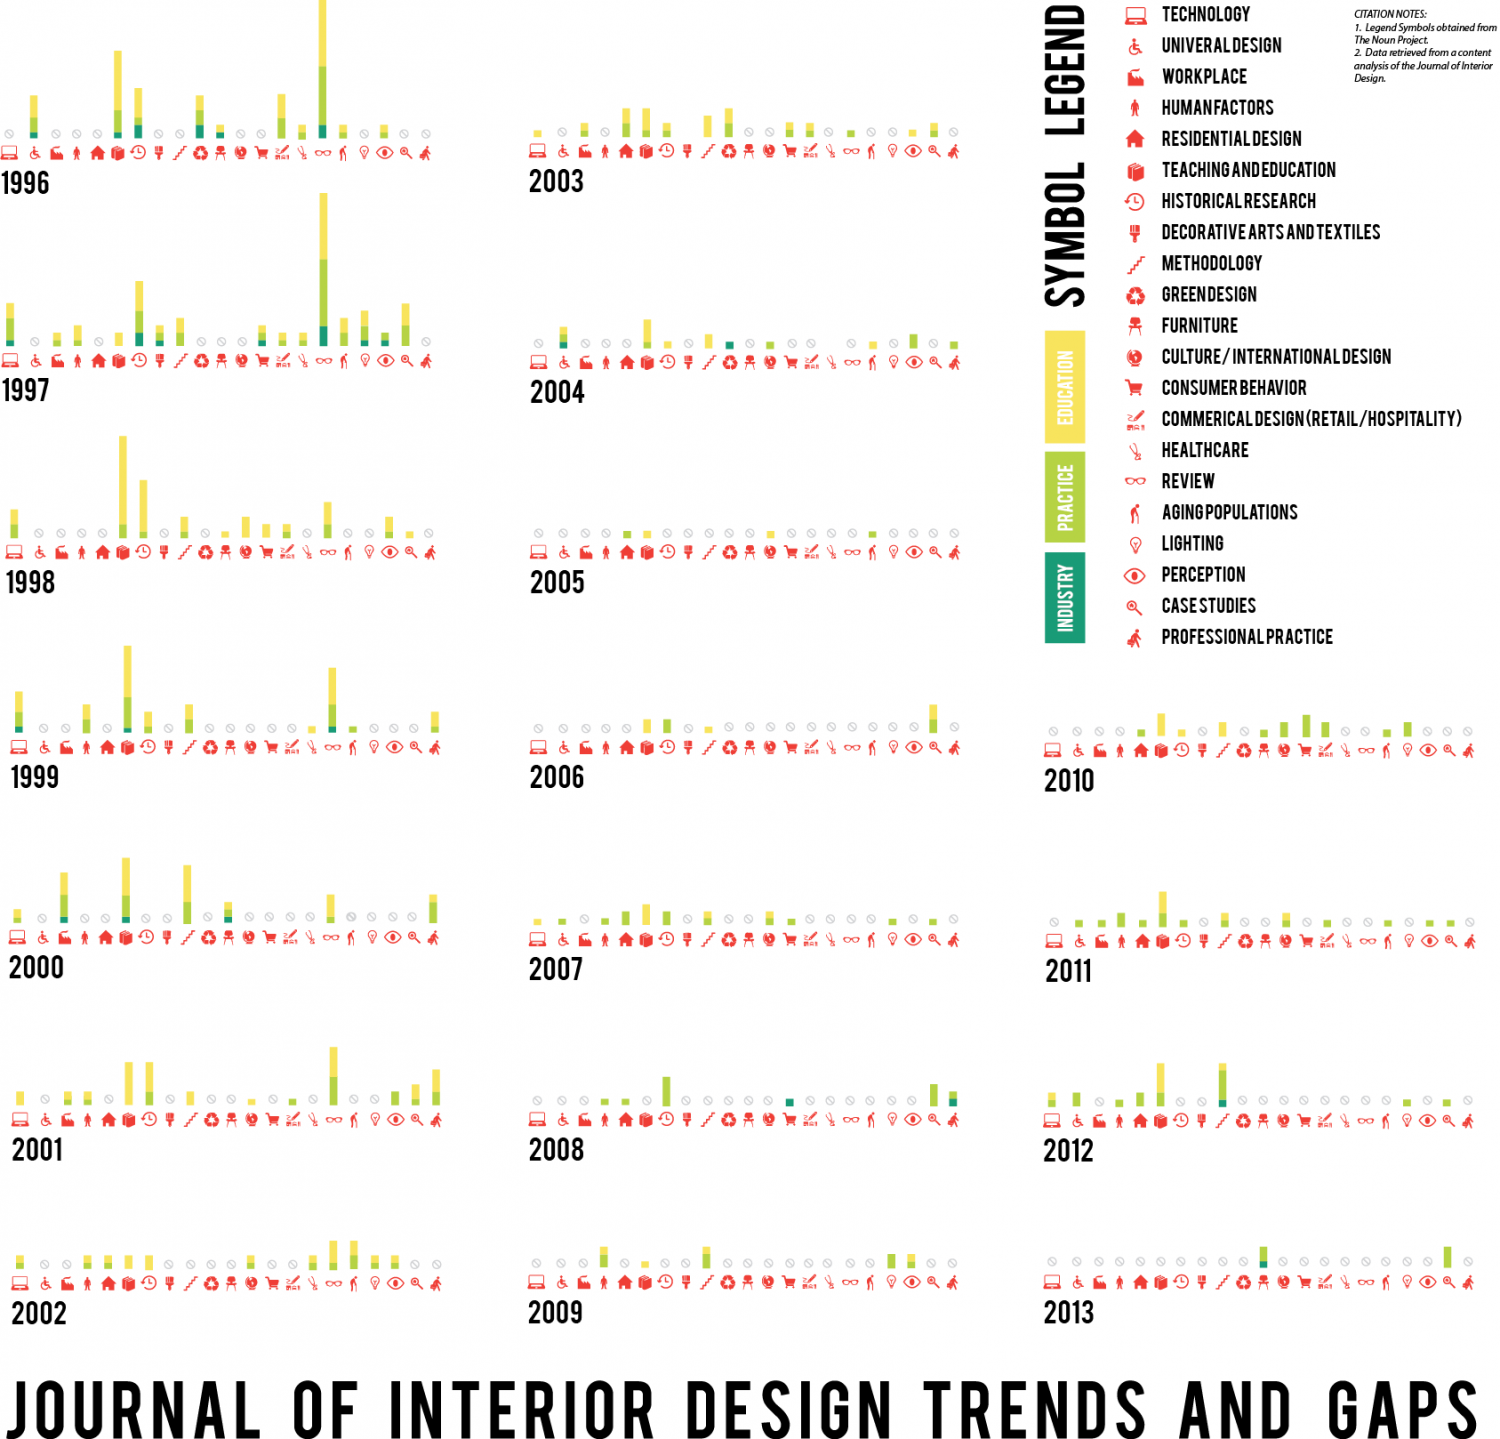 Journal of Interior Design Trends and Gaps Infographic